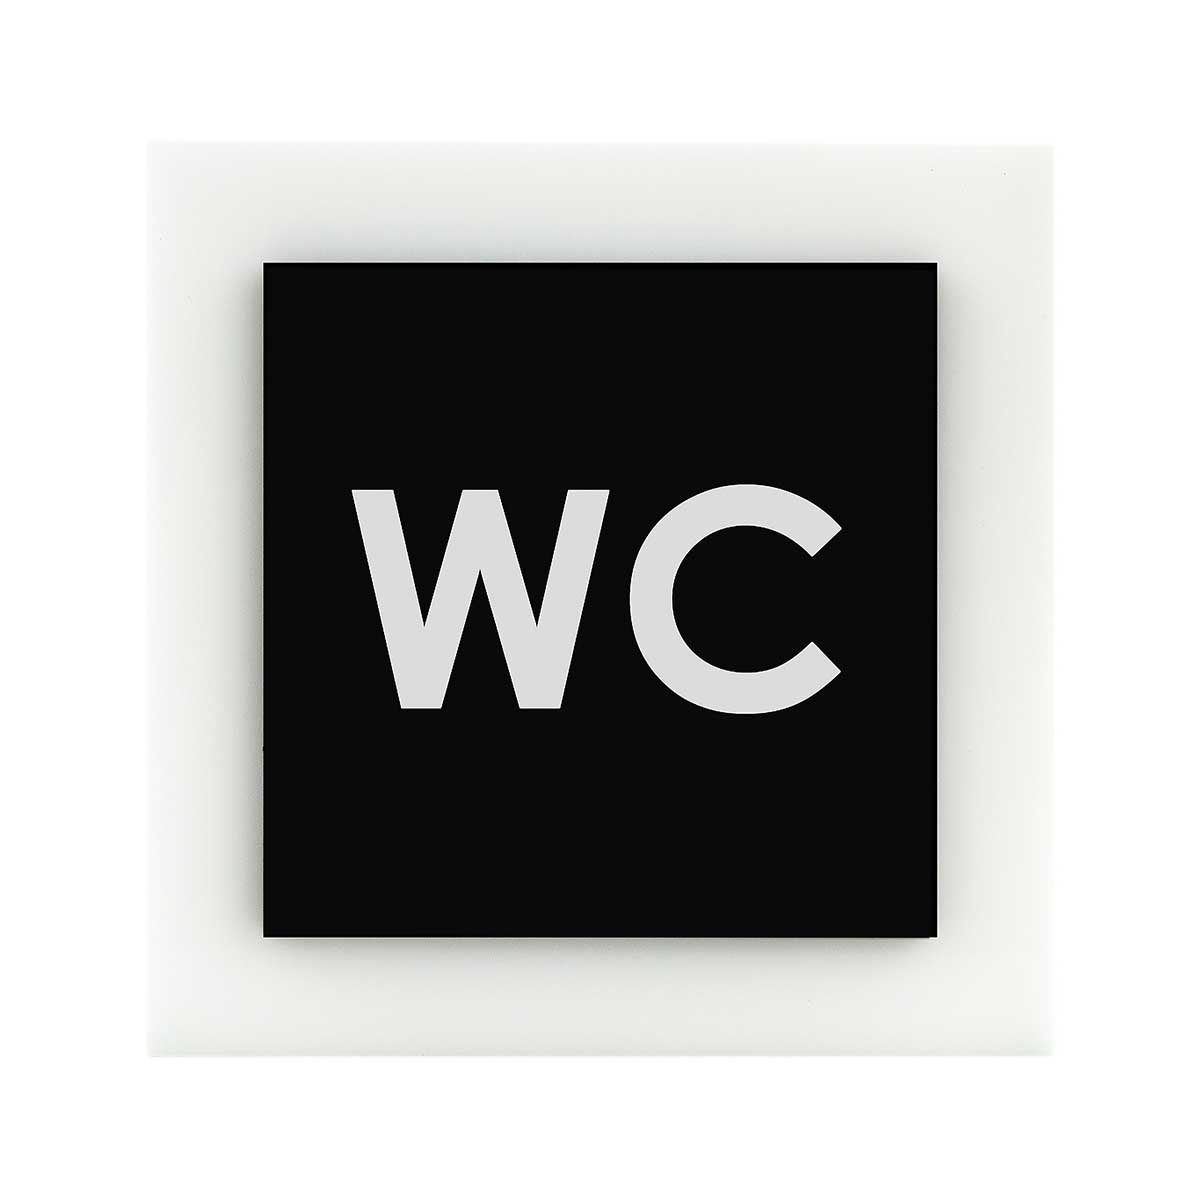 Acrylic Bathroom Sign - WC Bathroom Signs black/white Bsign